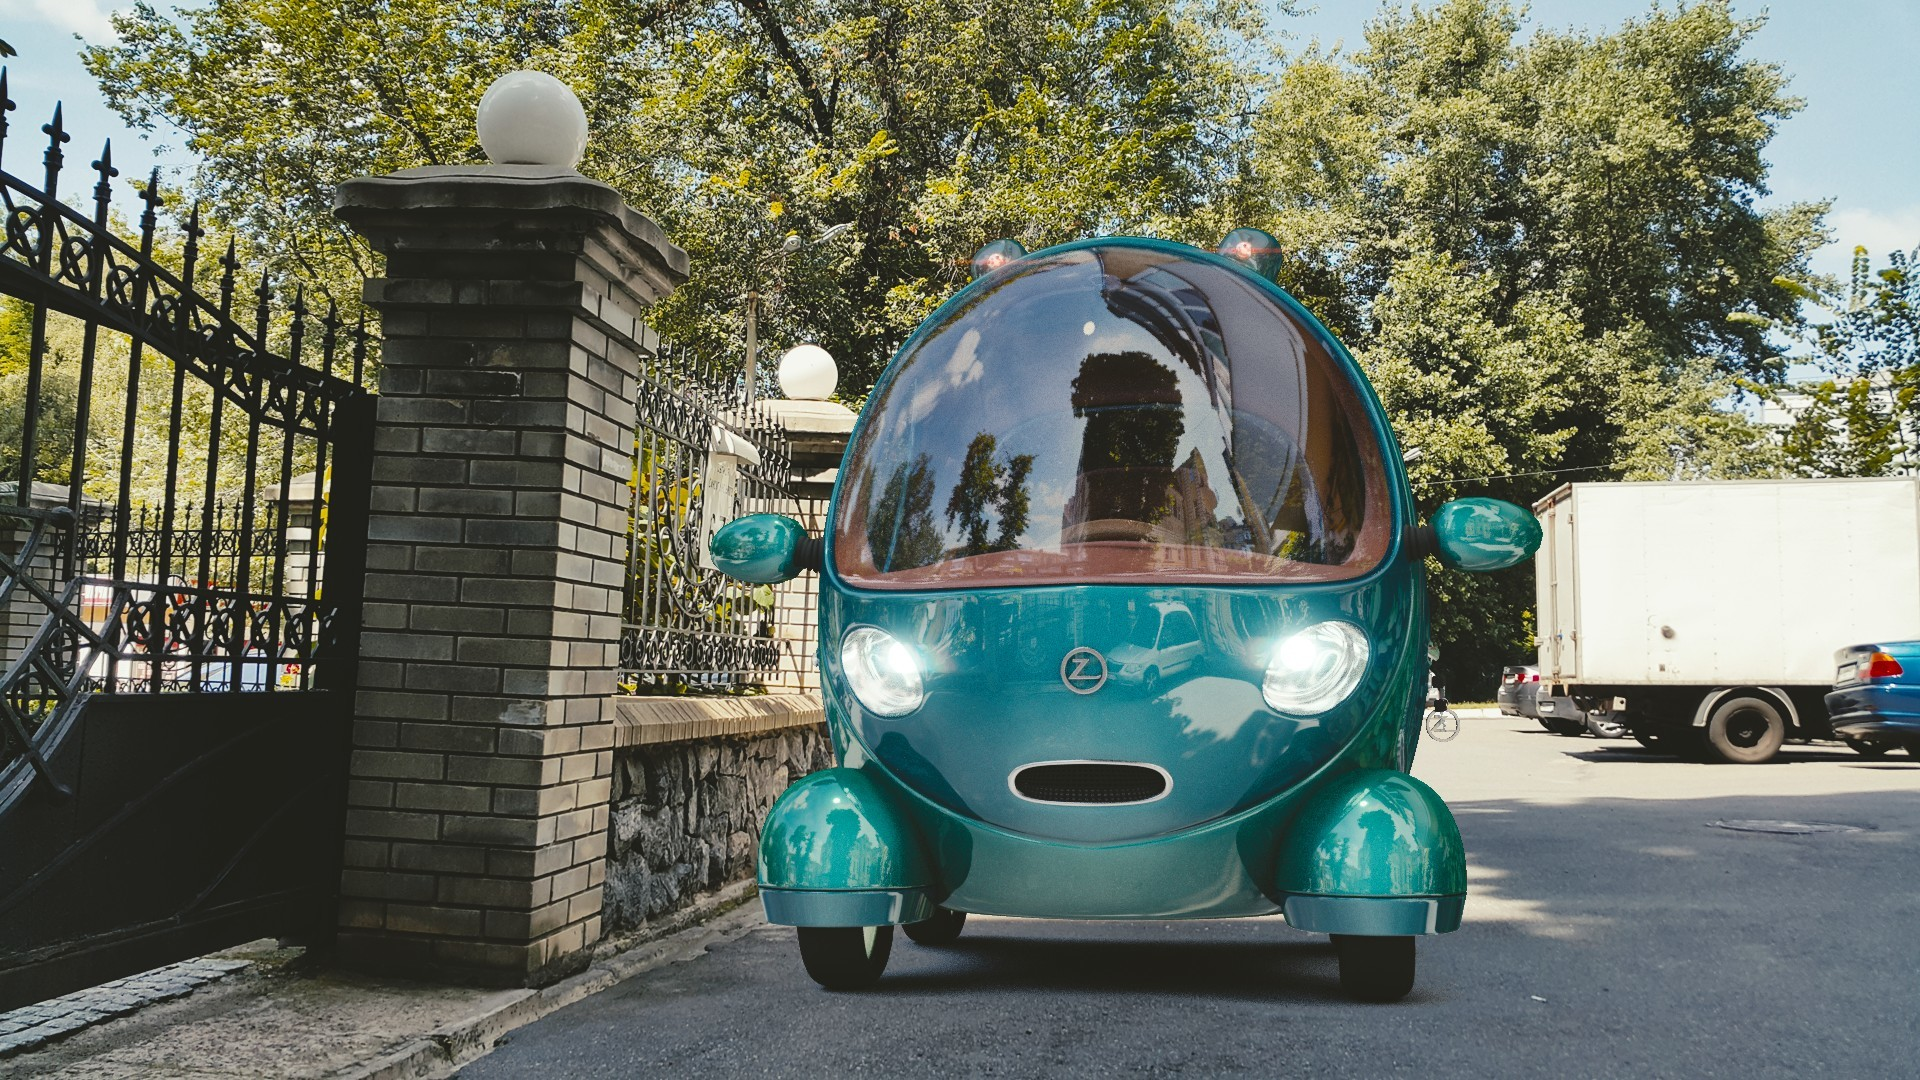 3c042774d35edeb9af844782532fa53793f86366 Cool Review About Zootopia Cars with Inspiring Images Cars Review